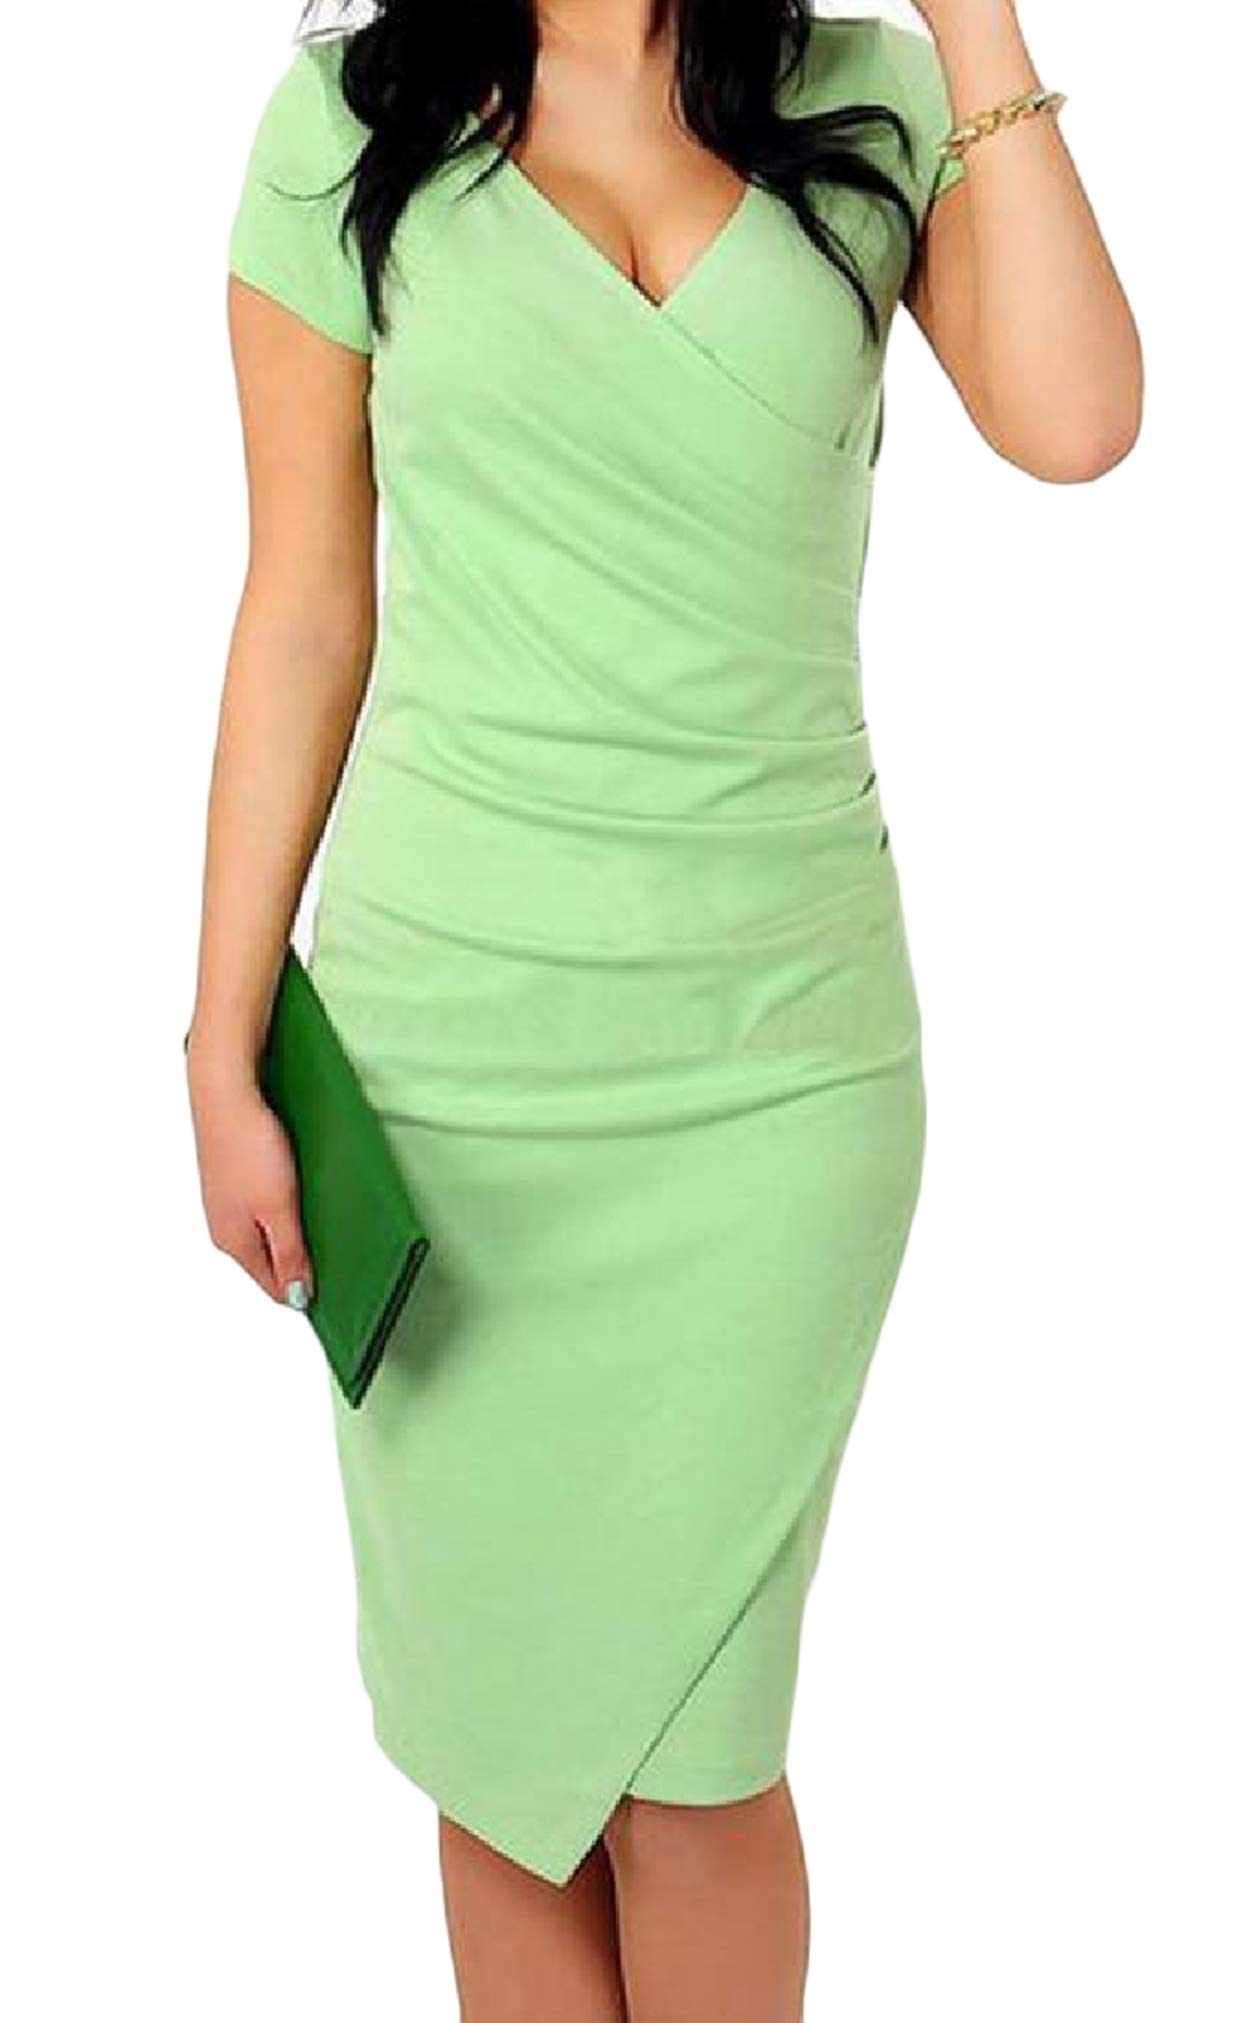 DressU Womens Office Sexy V Neck Candy Short Sleeves Fit Cross Midi Dress Green XS